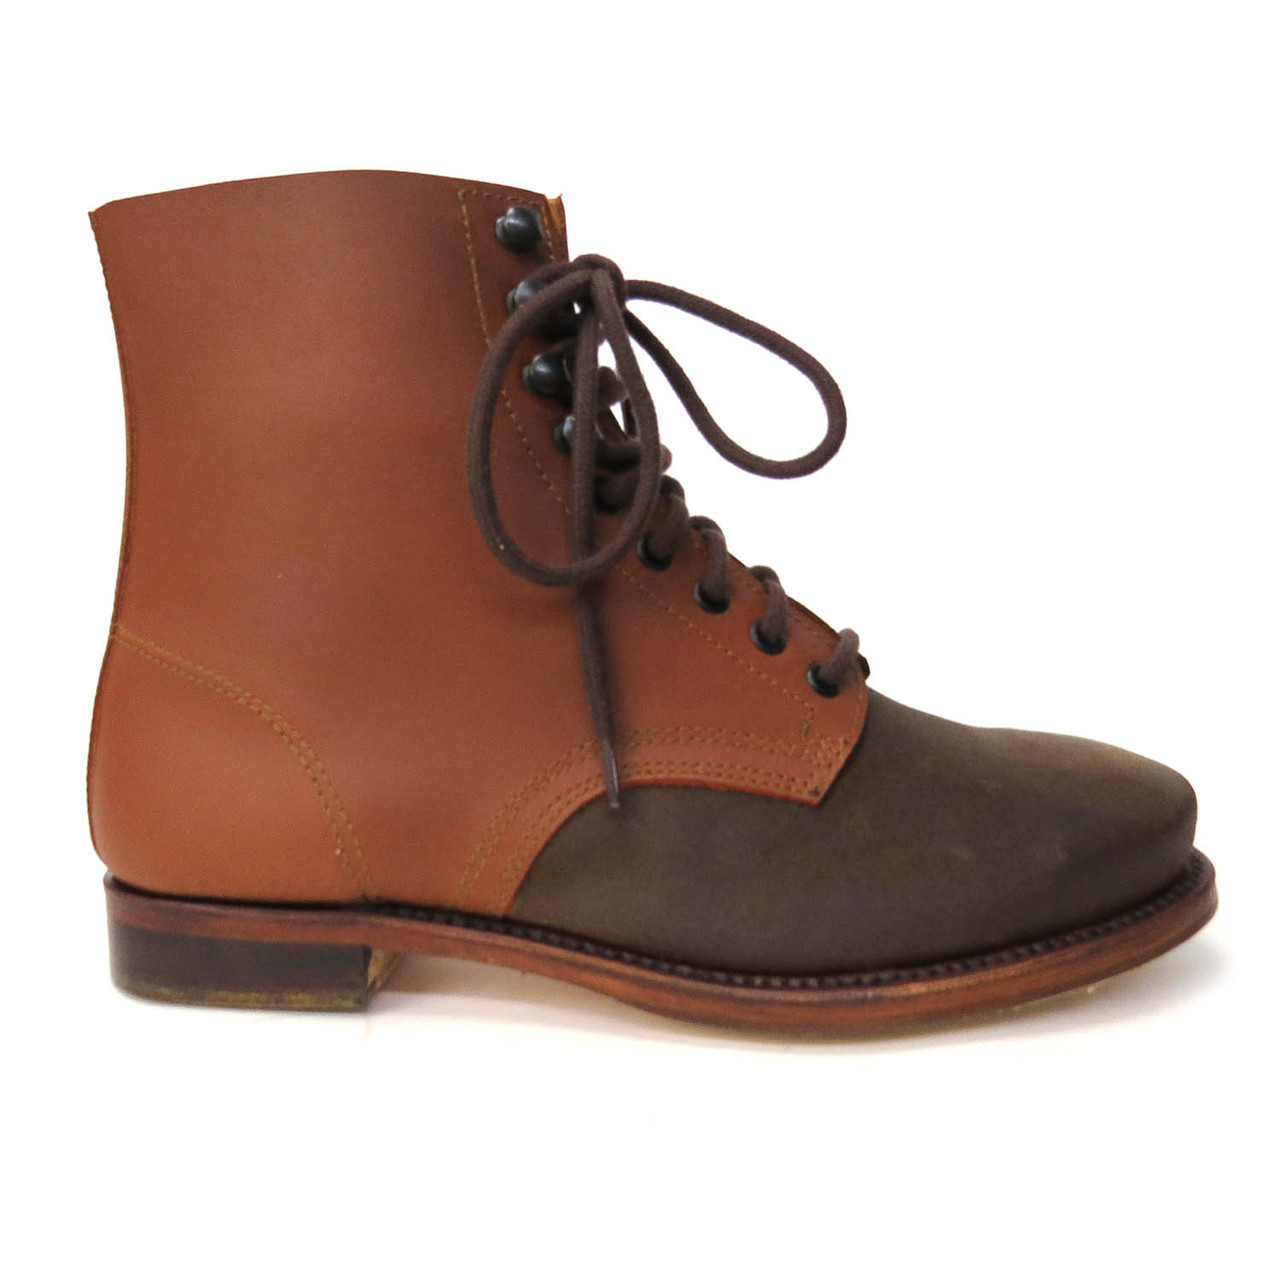 M37 Low Boots